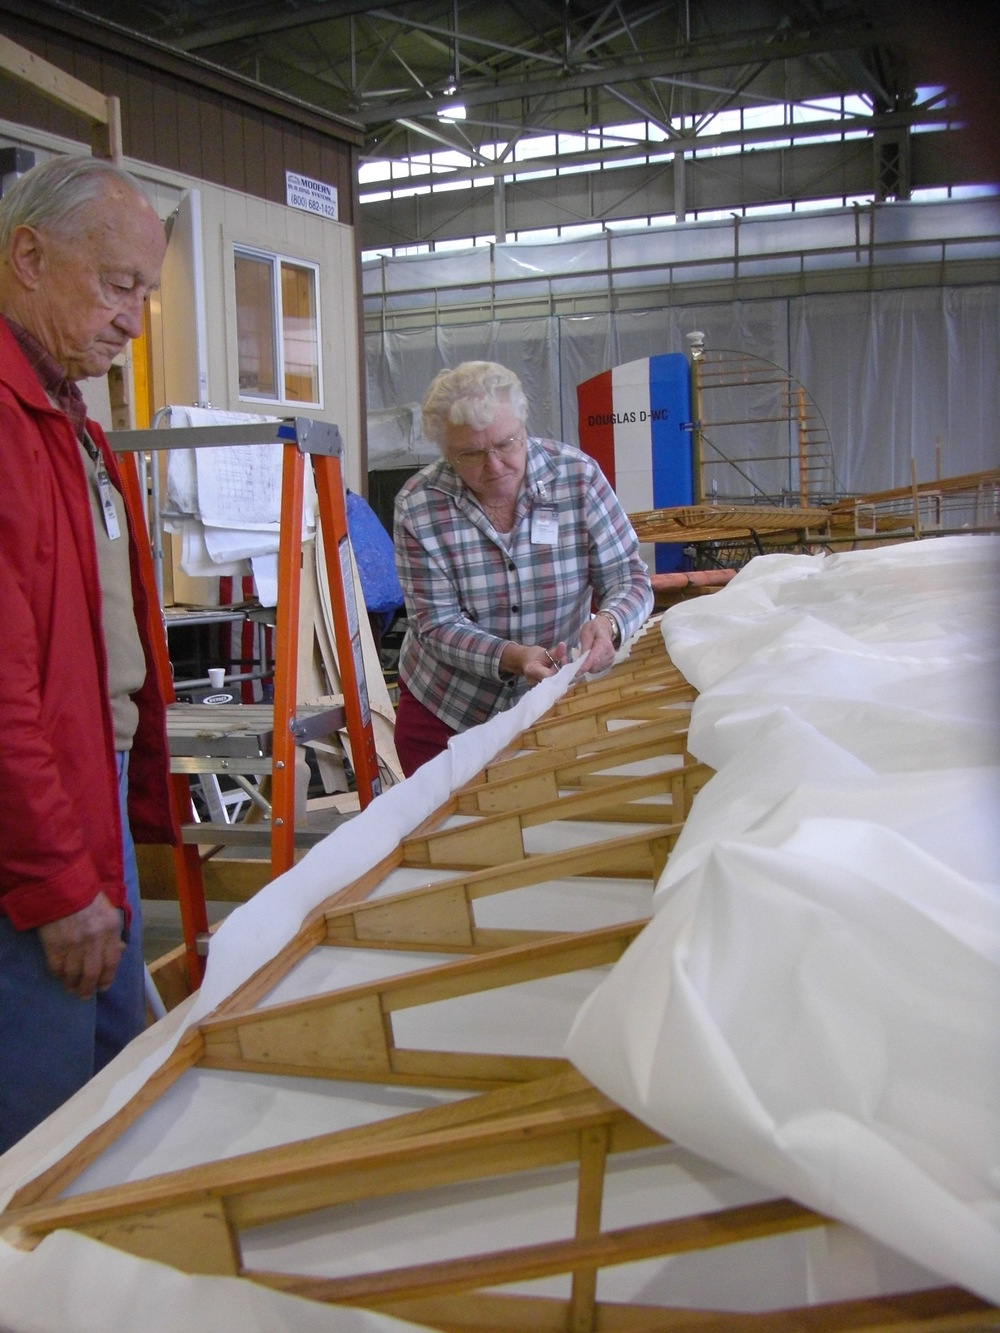 Fred pauses, as beautiful wood wing disappears under a cloud of white fabric